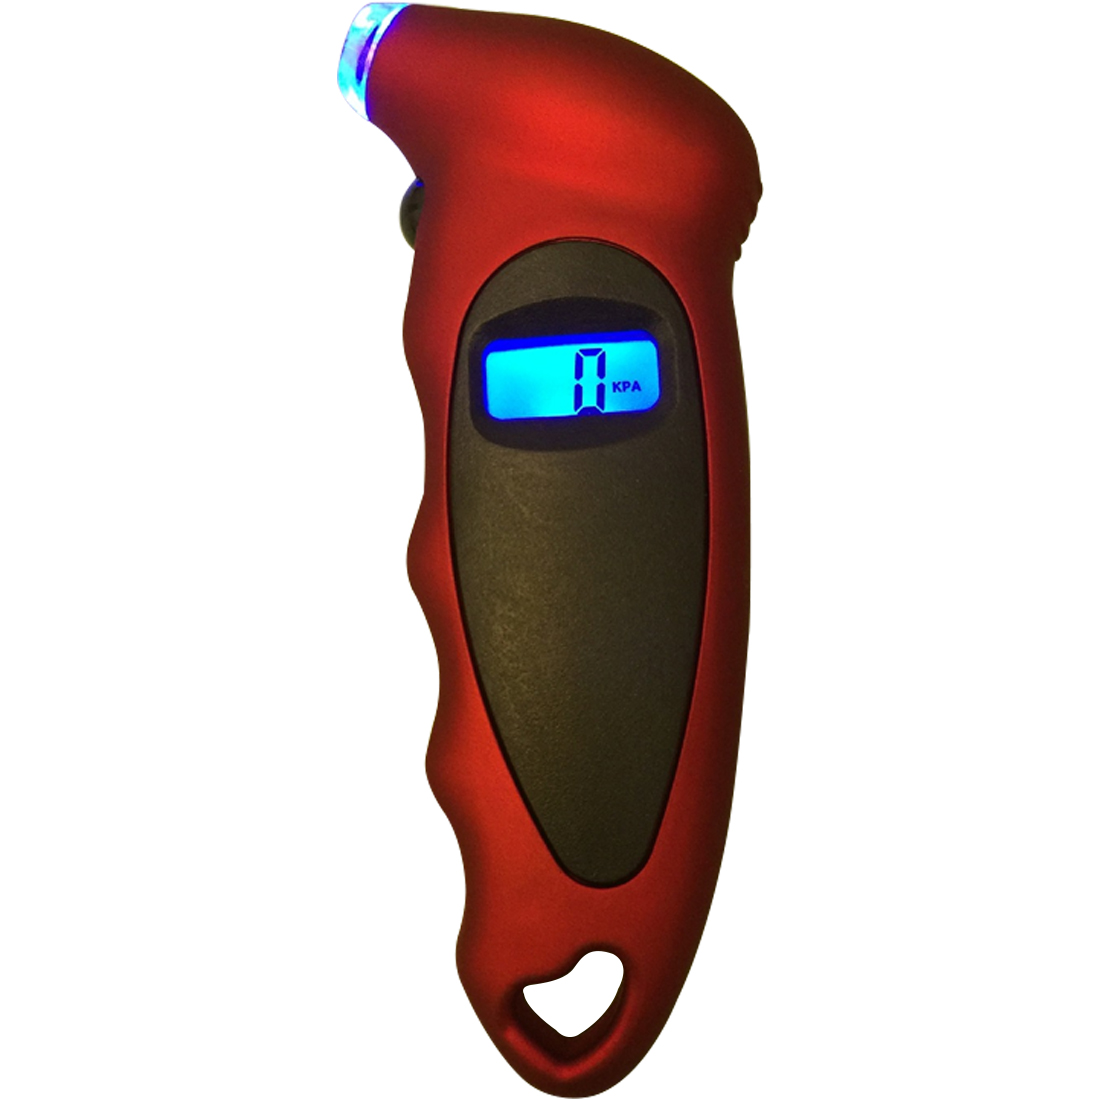 Hot 1PC LCD Display Car Digital Tire Pressure Tool Gauge Car Motorcycle Bike Mini Digital Tire Gauge Tire Diagnostic 8 in 1 1 2 digital display tire pressure gauge black 3 x aaa battery